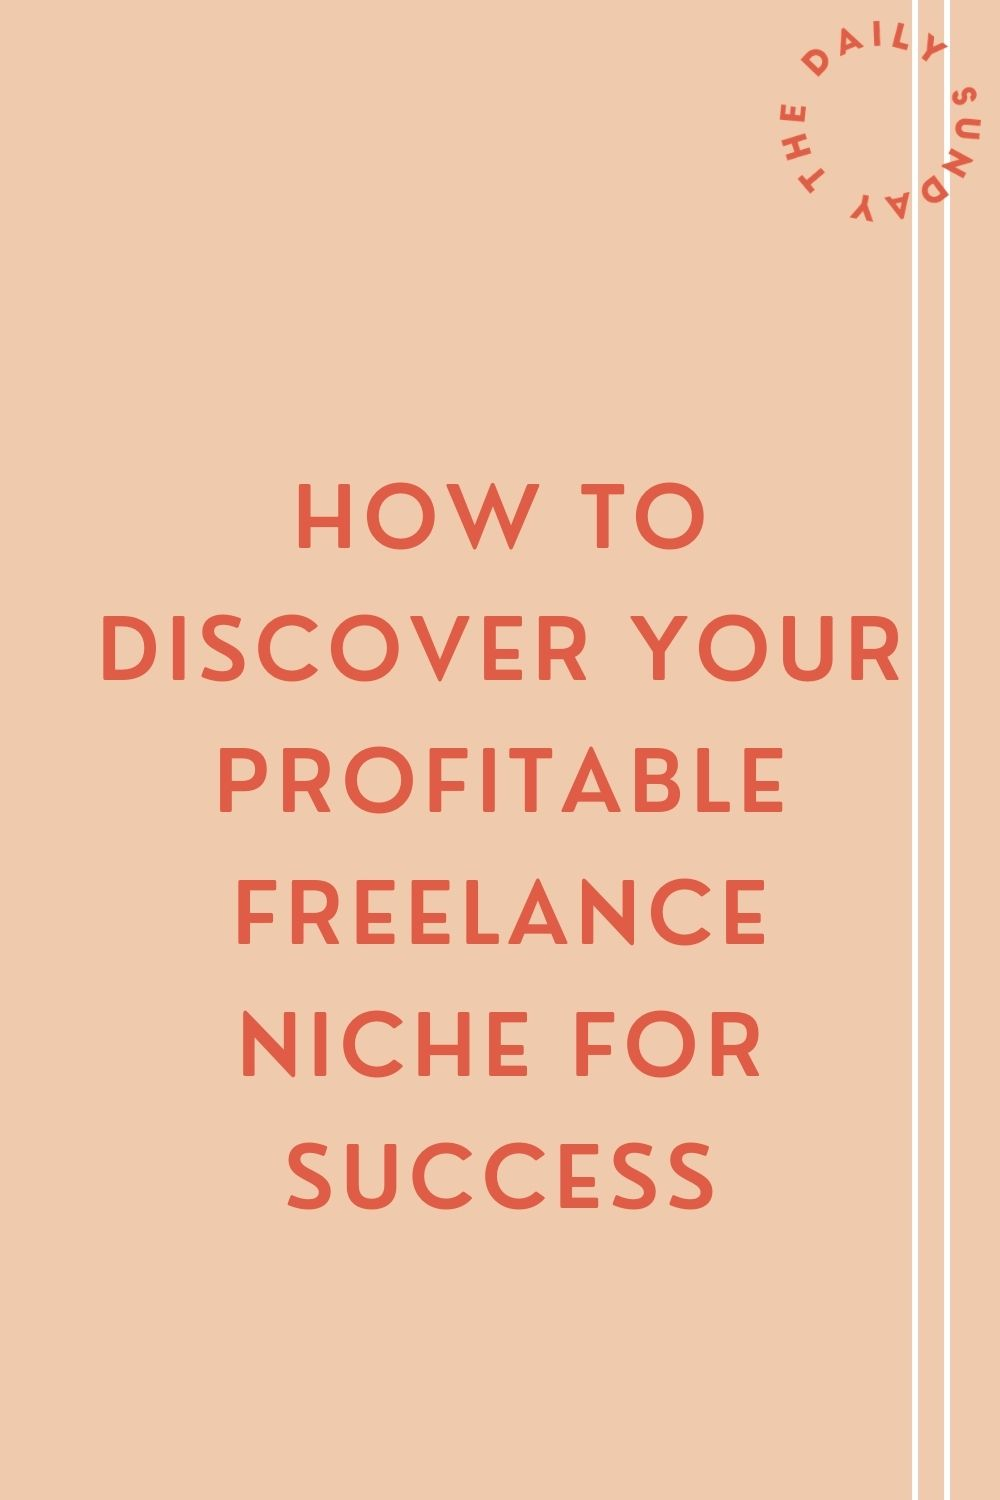 How To Discover Your Profitable Freelance Niche For Success